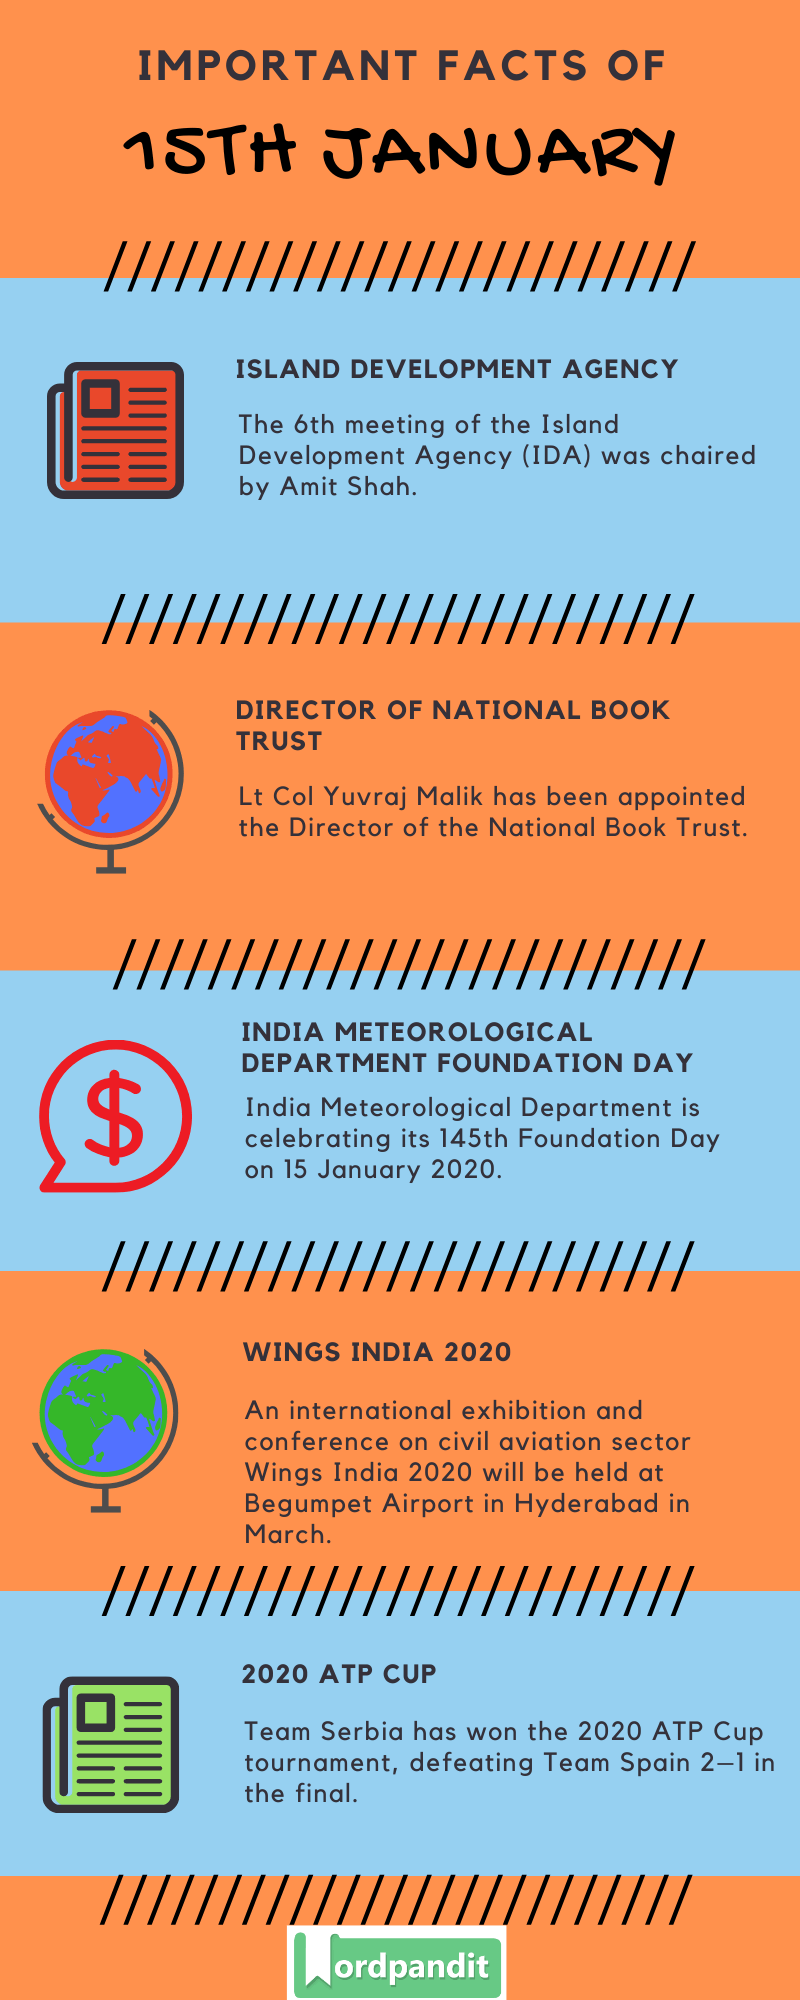 Daily Current Affairs 15 January 2020 Current Affairs Quiz 15 January 2020 Current Affairs Infographic